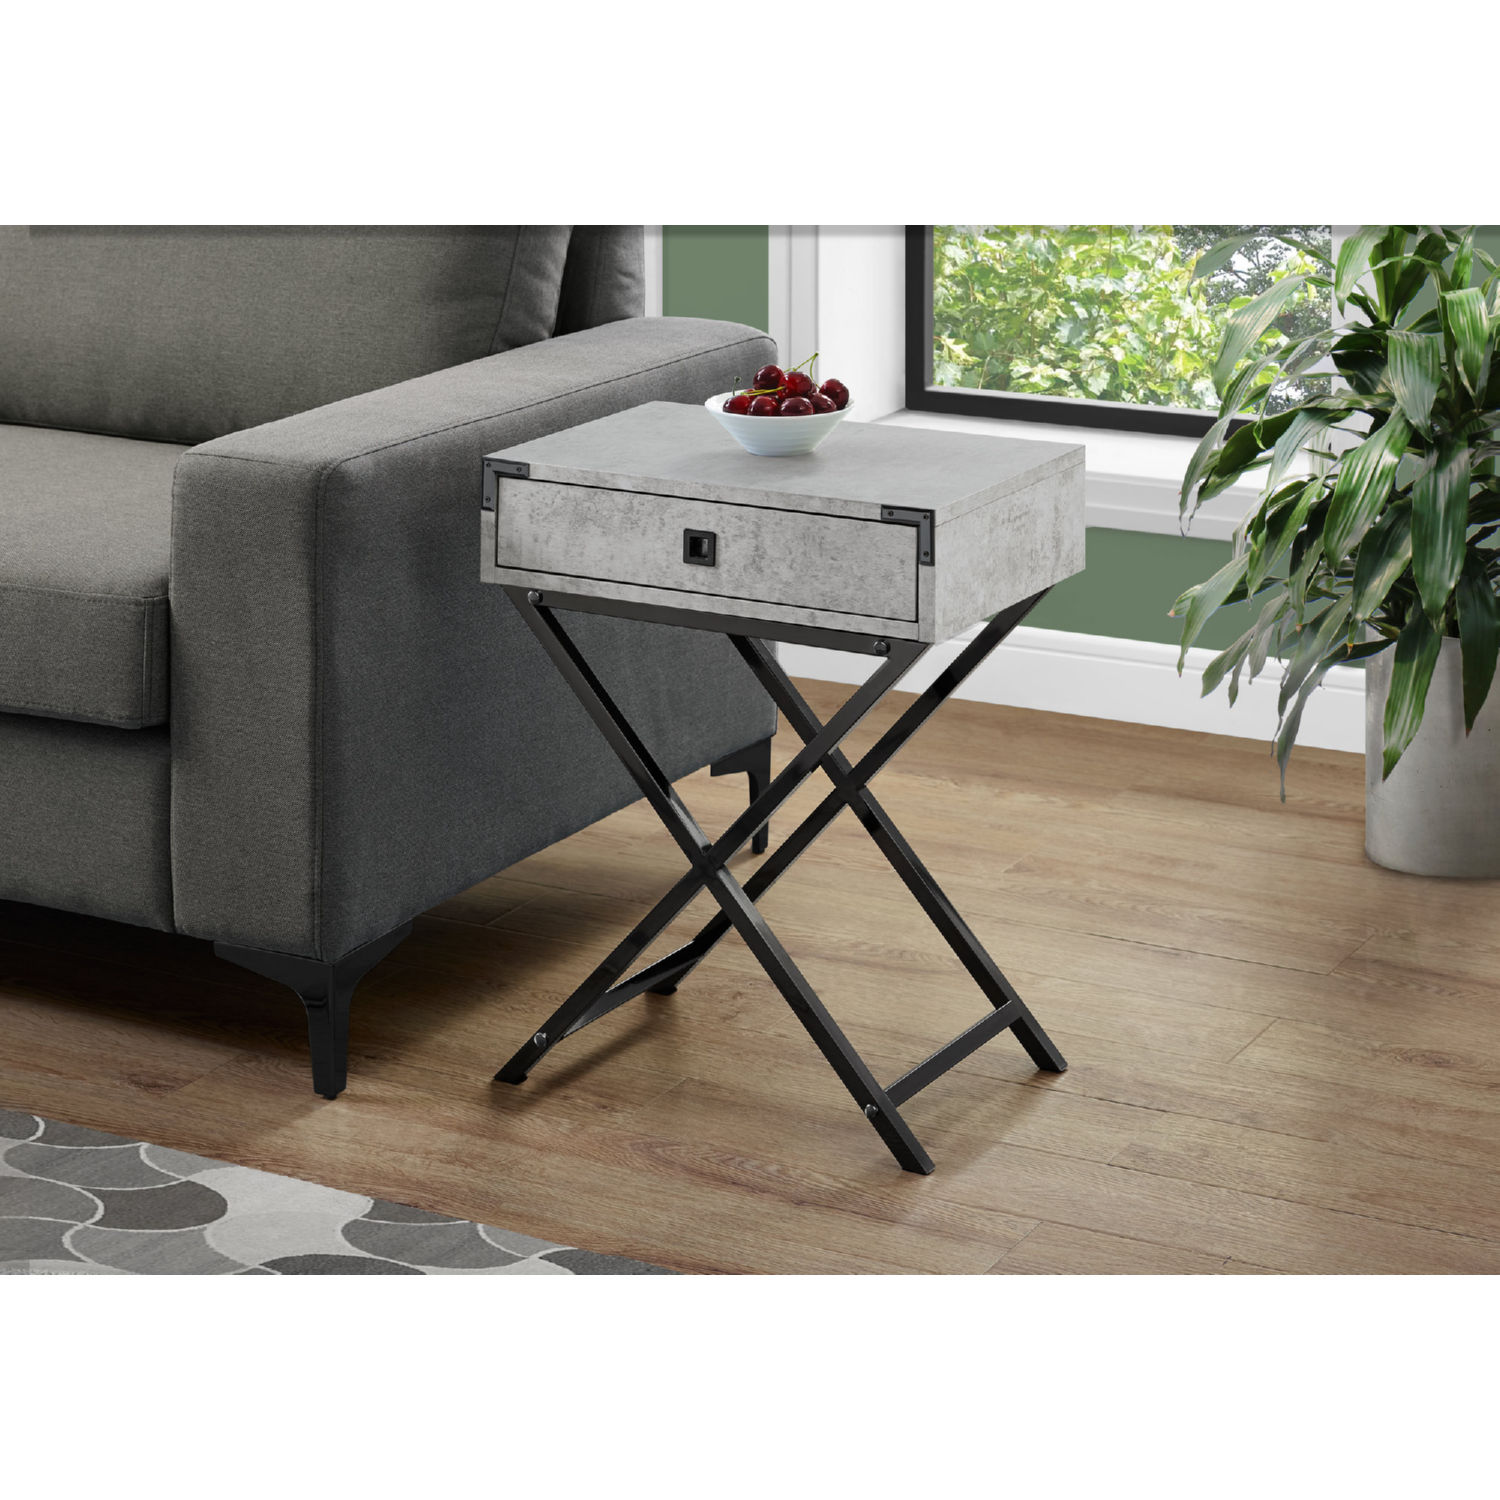 monarch specialties accent table grey cement look black nickel metal chair design classics furniture plastic cloth drum stool base gear lamp storage chest seat ikea drop leaf